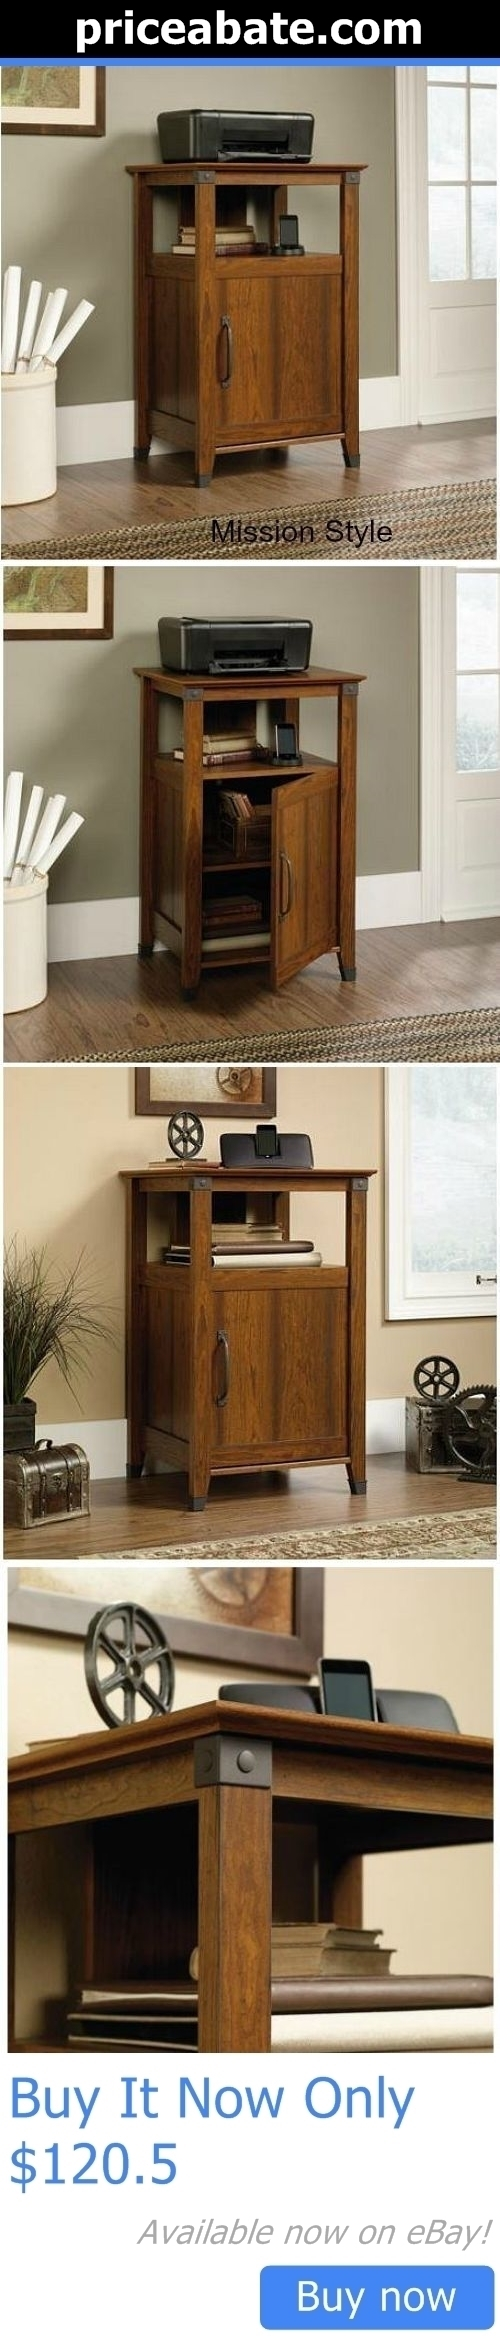 Office Furniture Mission Style Printer Stand Wood Storage Cabinet Utility Shelf It